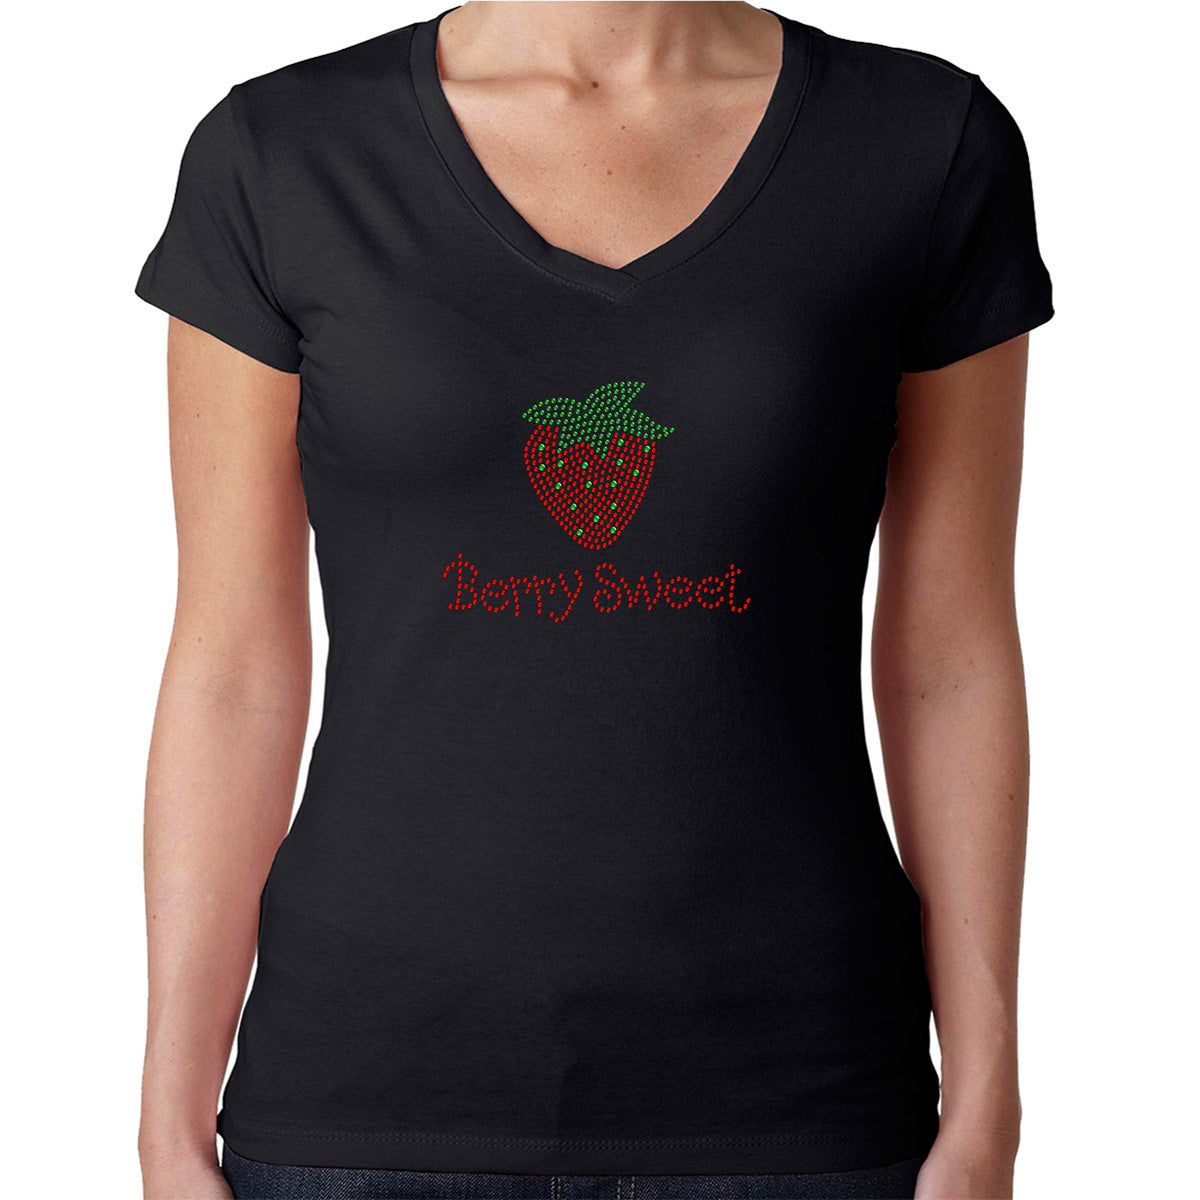 Womens T-Shirt Rhinestone Bling Black Fitted Tee Berry Sweet Straberry Sparkle